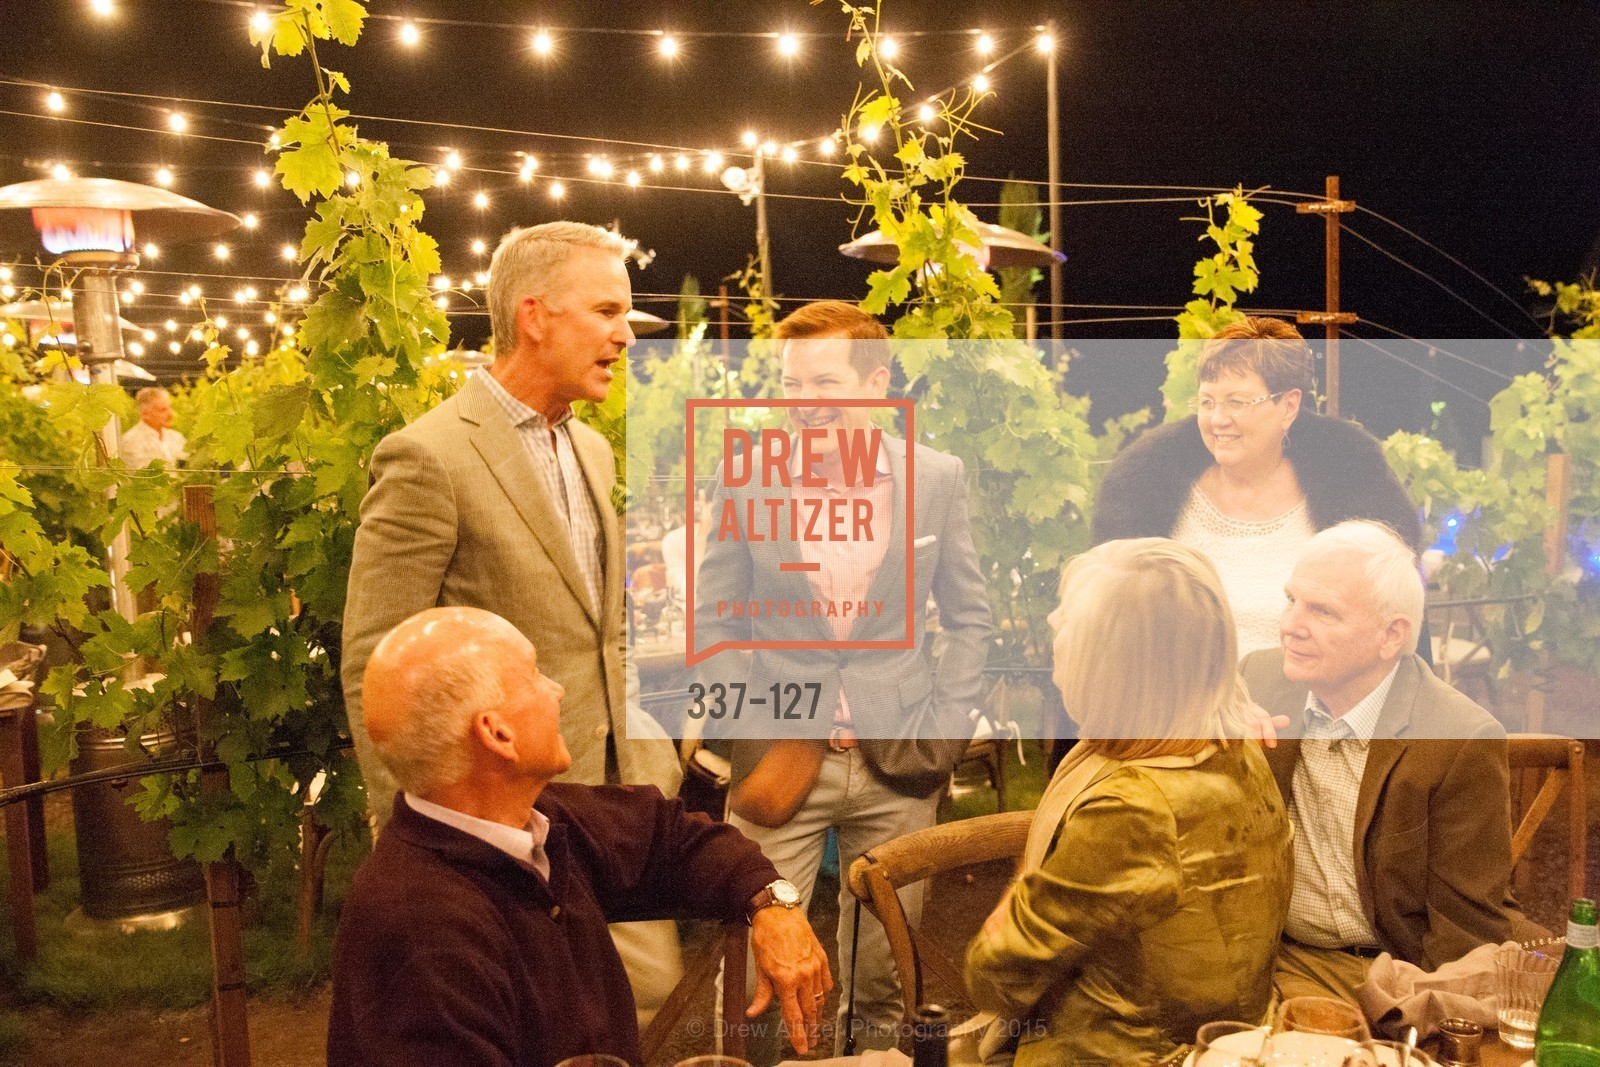 Jeffrey Gibson, Trent Norris, Darlene Sumner, An Evening in the Vineyard hosted by JACK CALHOUN & TRENT NORRIS, Jack Calhoun & Trent Norris Vineyard. 3393 Dry Creek Road, Healdsburg CA 95448, May 22nd, 2015,Drew Altizer, Drew Altizer Photography, full-service agency, private events, San Francisco photographer, photographer california